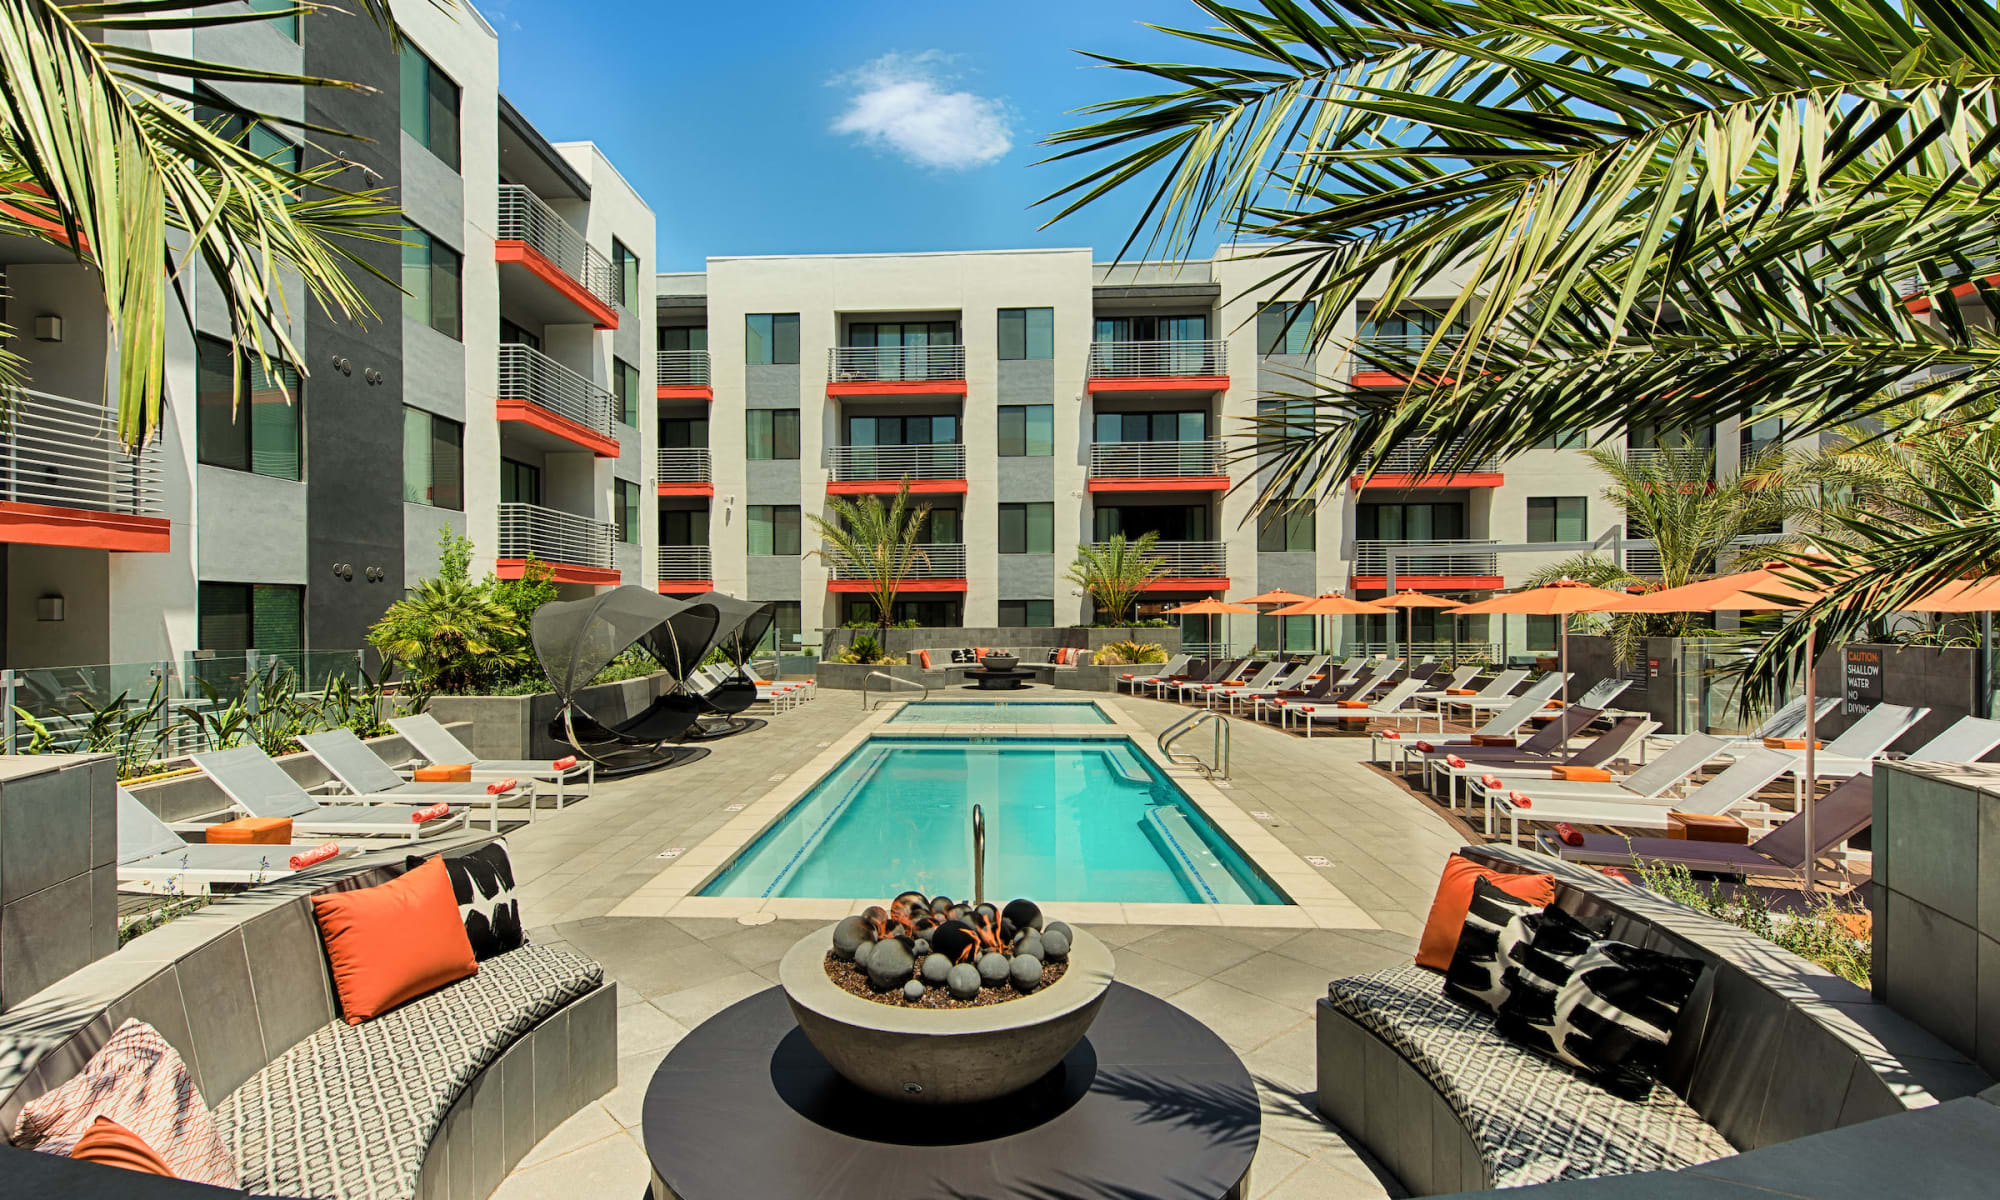 Apartments at The TOMSCOT in Scottsdale, Arizona